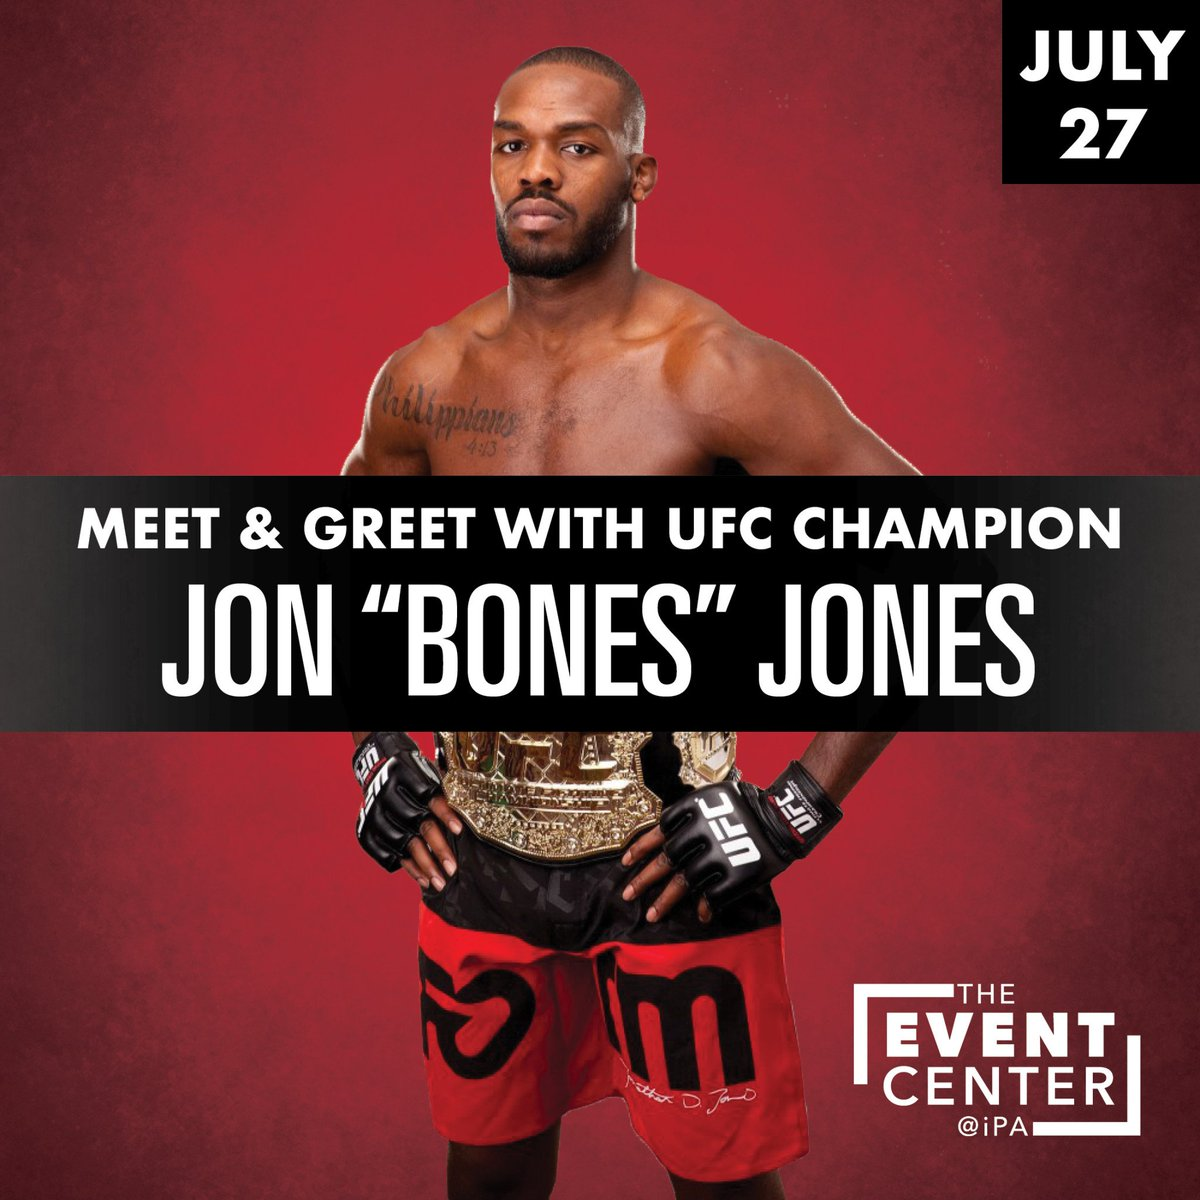 JUST ANNOUNCED‼  #UFC Champion @JonnyBones will be here on Saturday, July 27th! Tickets for the meet & greet and autograph signing go on-sale Friday at 1pm.👊 http://bit.ly/2QwsGR4